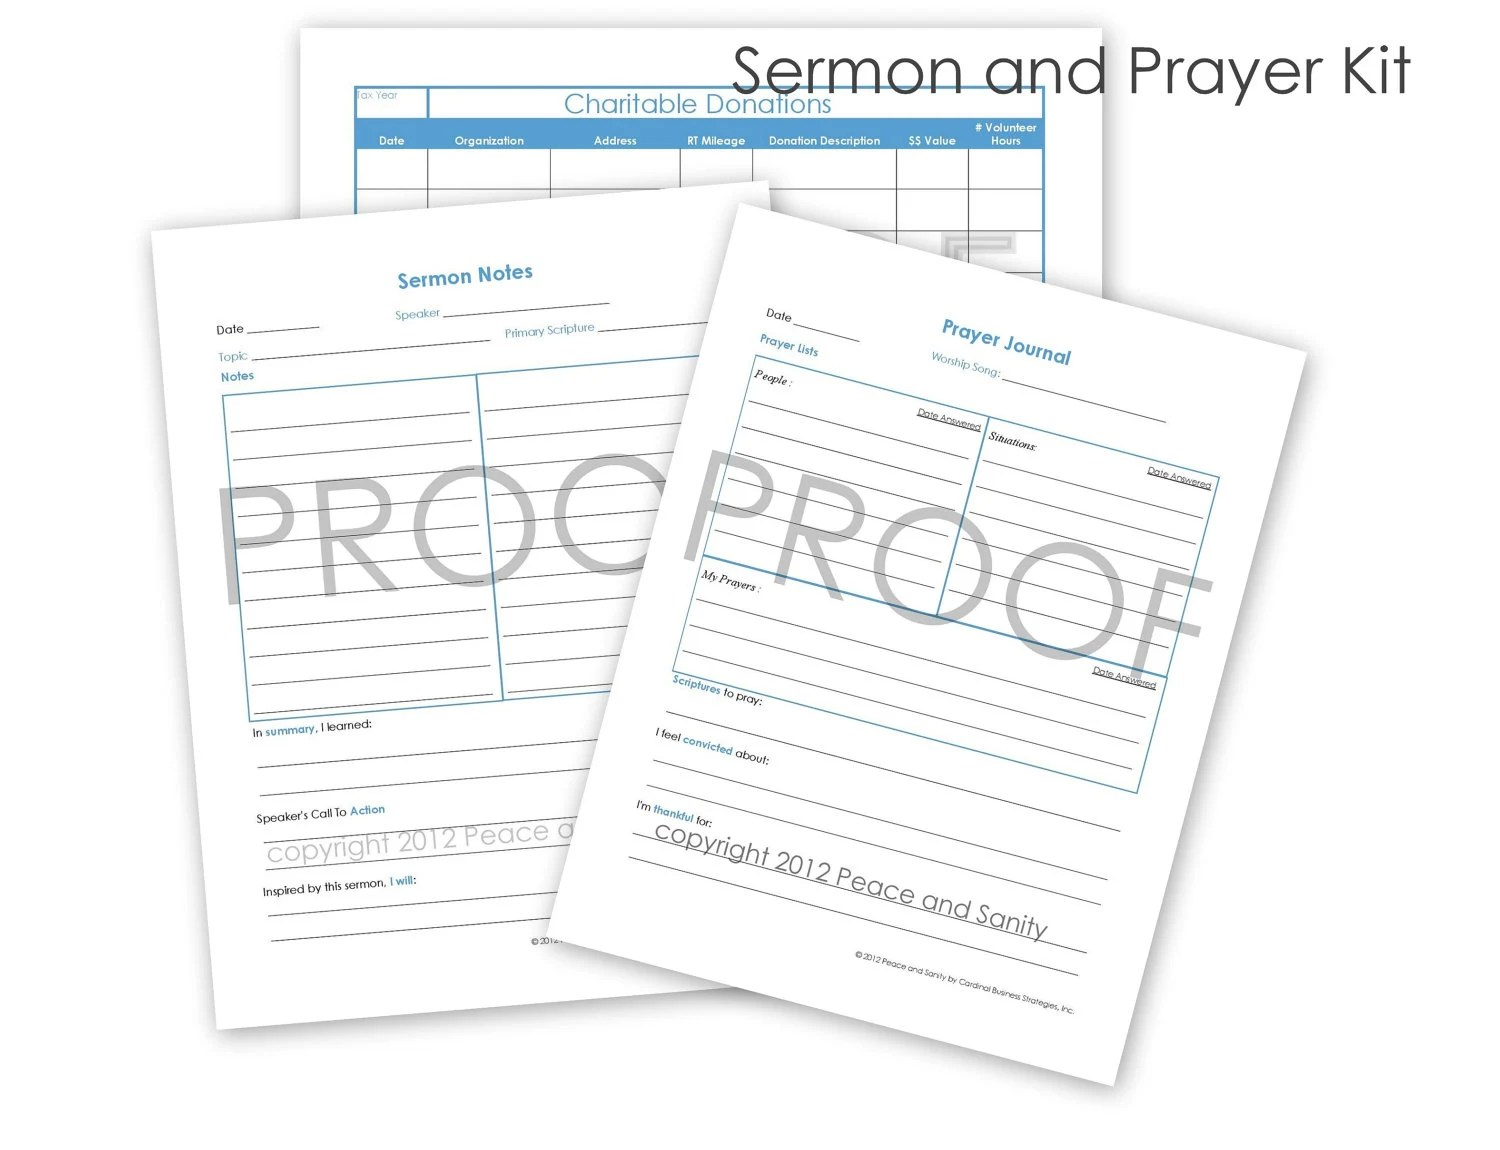 Prayer Journal/ Sermon Notes/ Charitable by PeaceandSanity